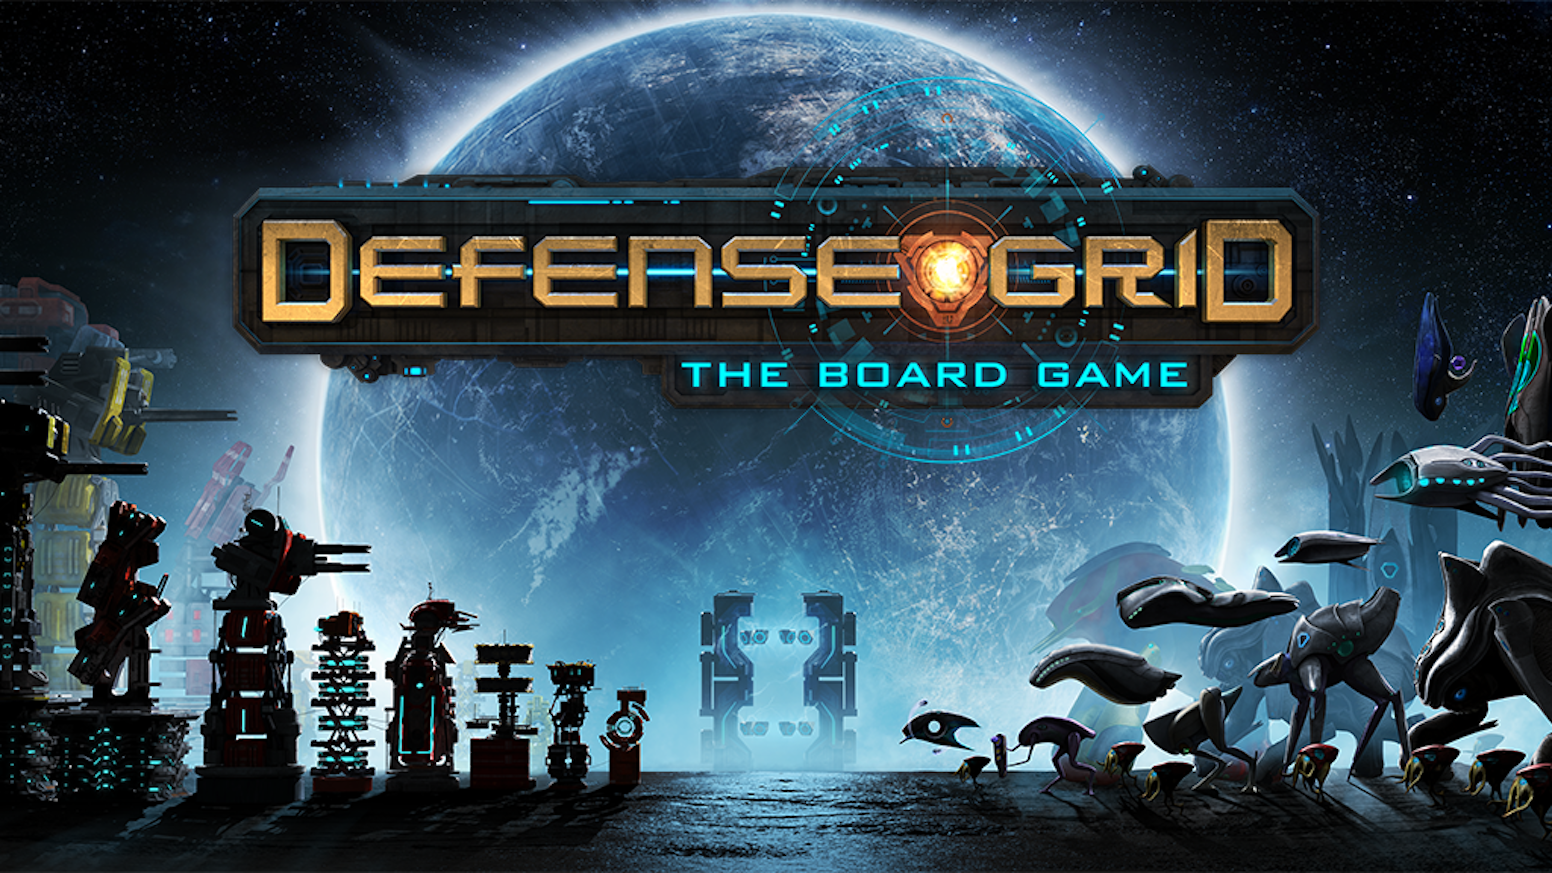 A Cooperative, Deck Building, Tower Defense board game, for 1 to 4 players with 77 miniatures in every box.